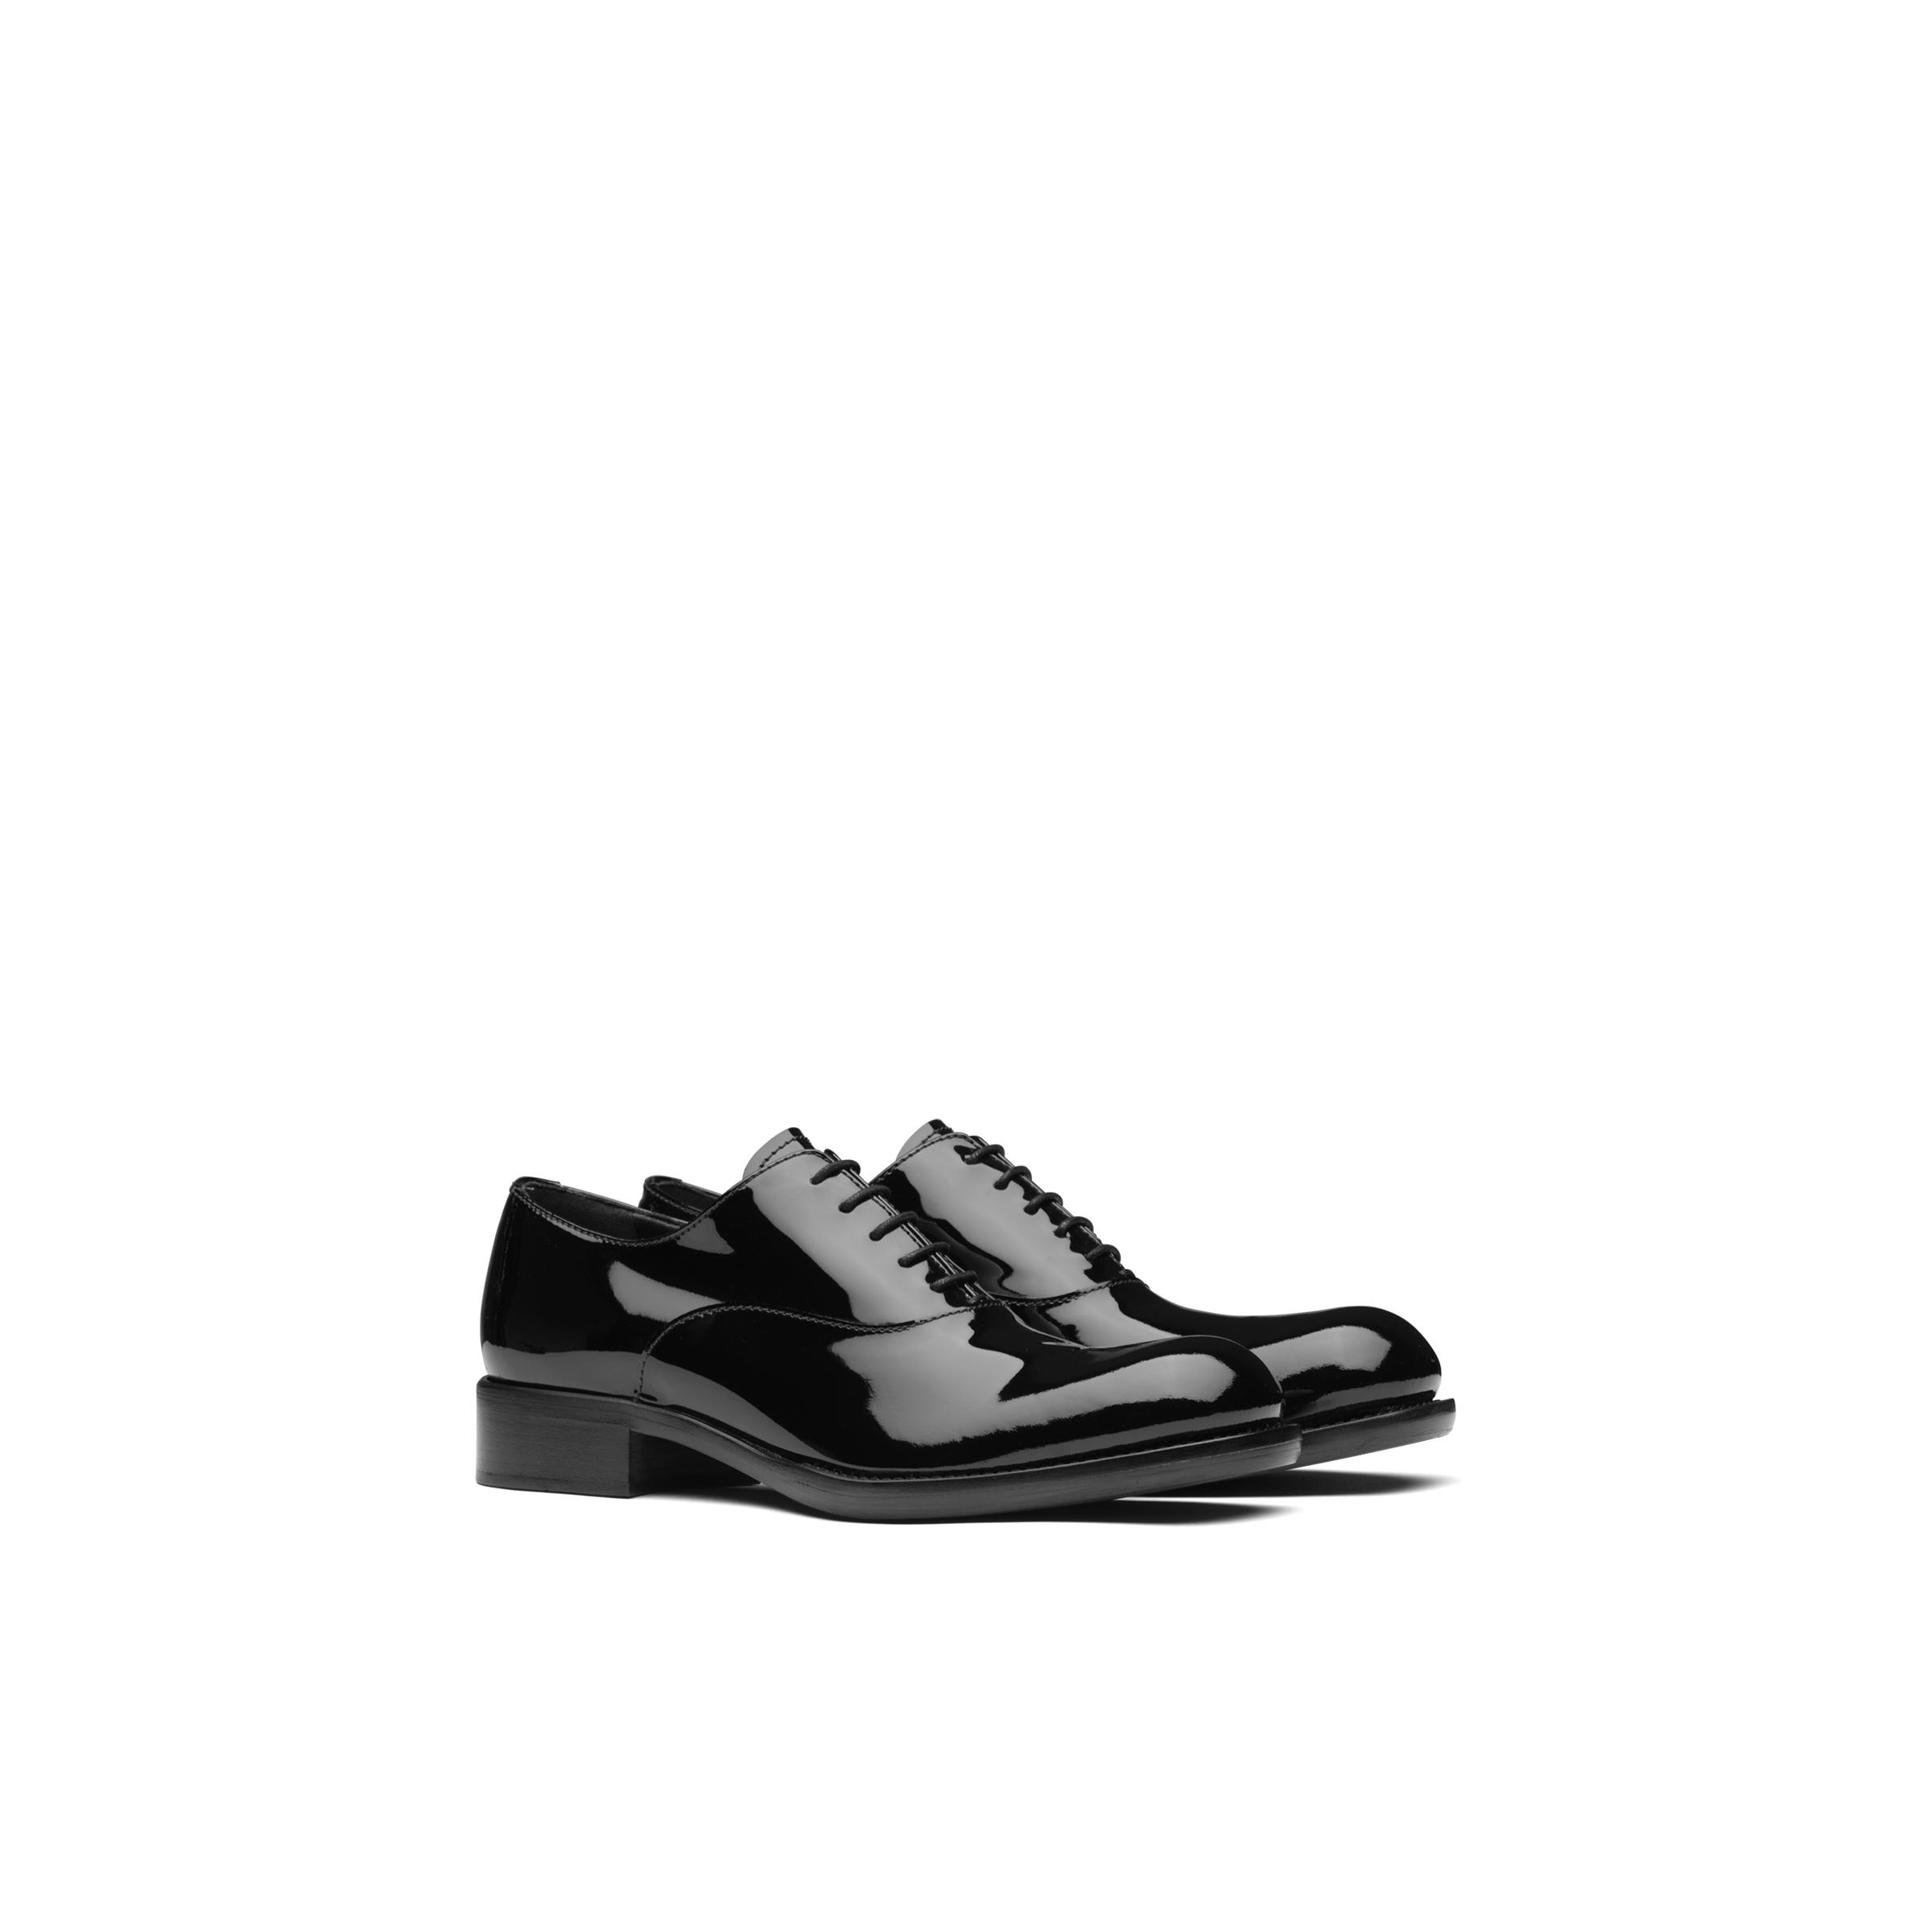 Patent Leather Oxford Shoes Women Black